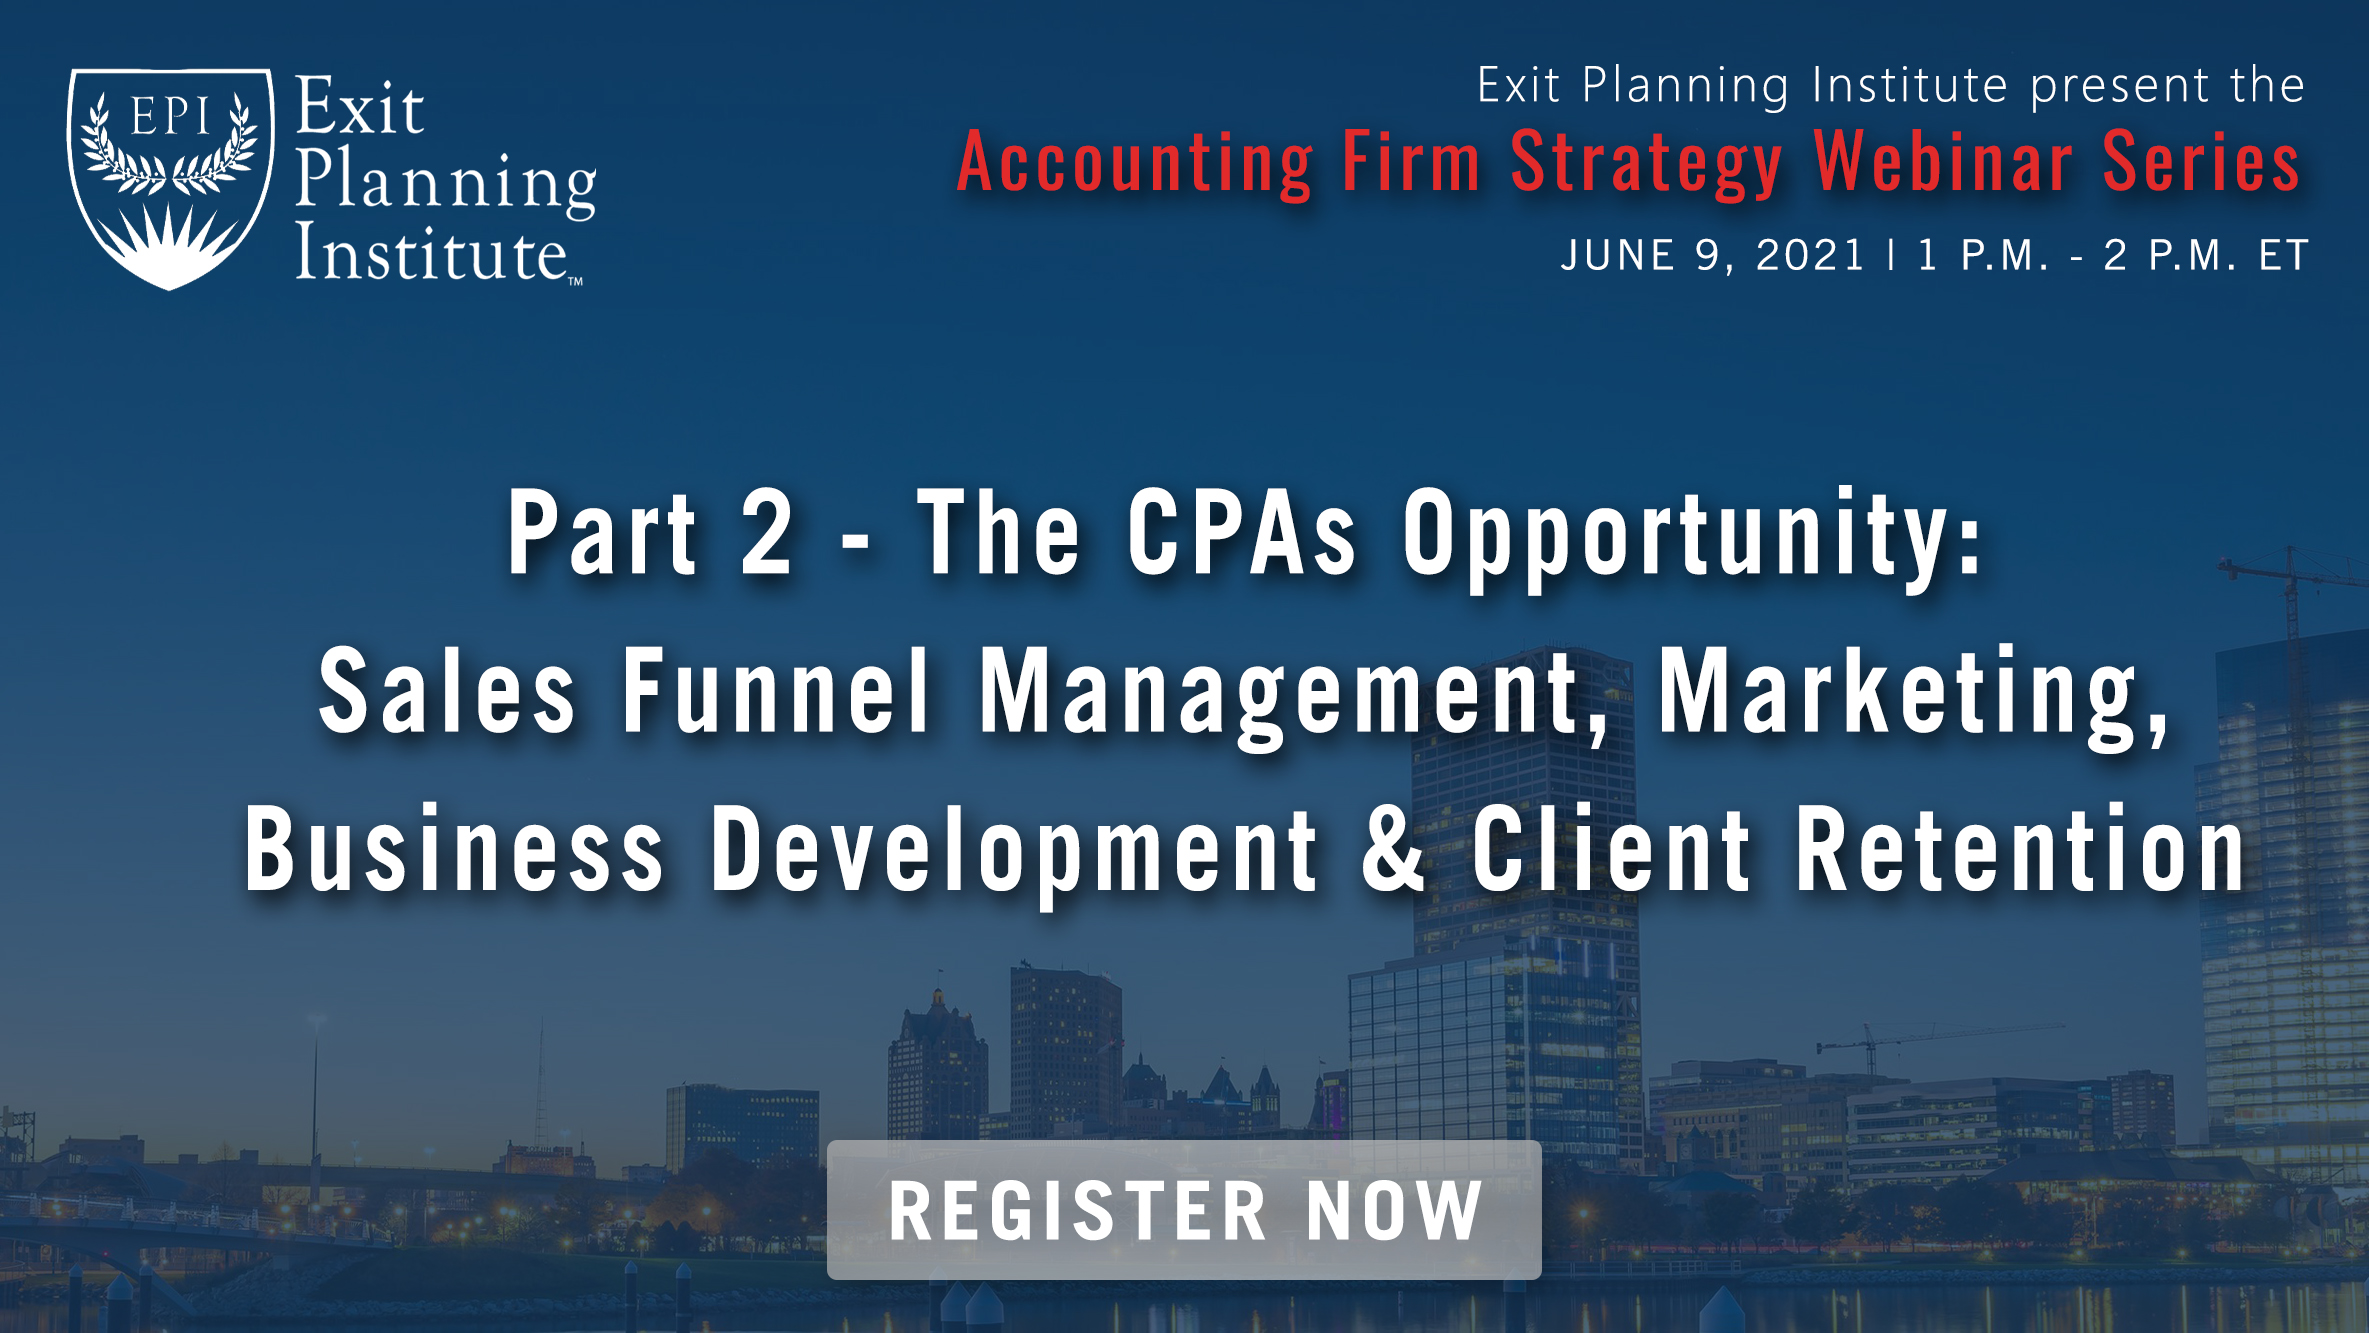 The CPAs <br>Opportunity